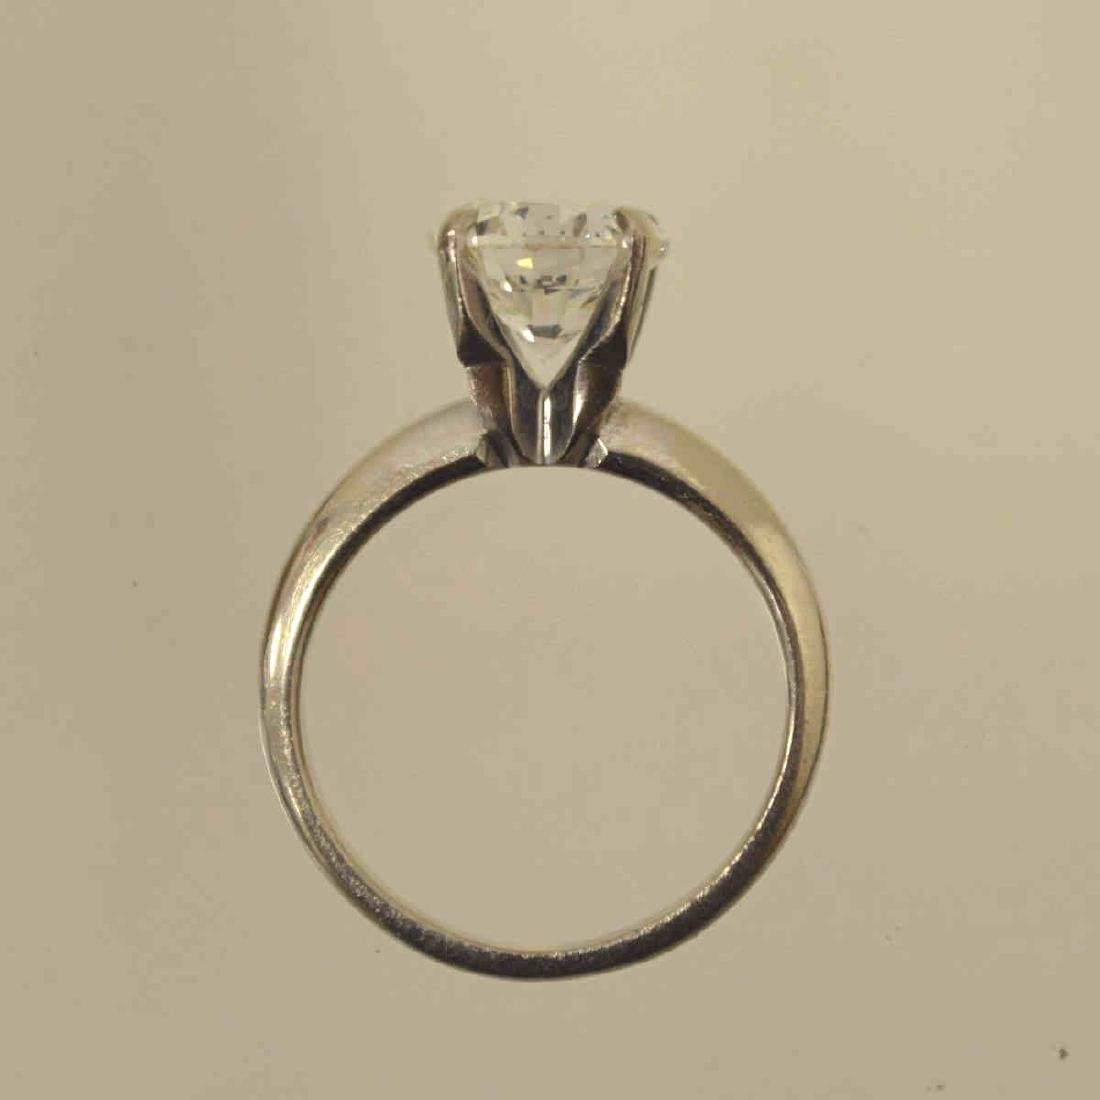 2.50ct. Diamond Solitaire Engagement Ring - 6